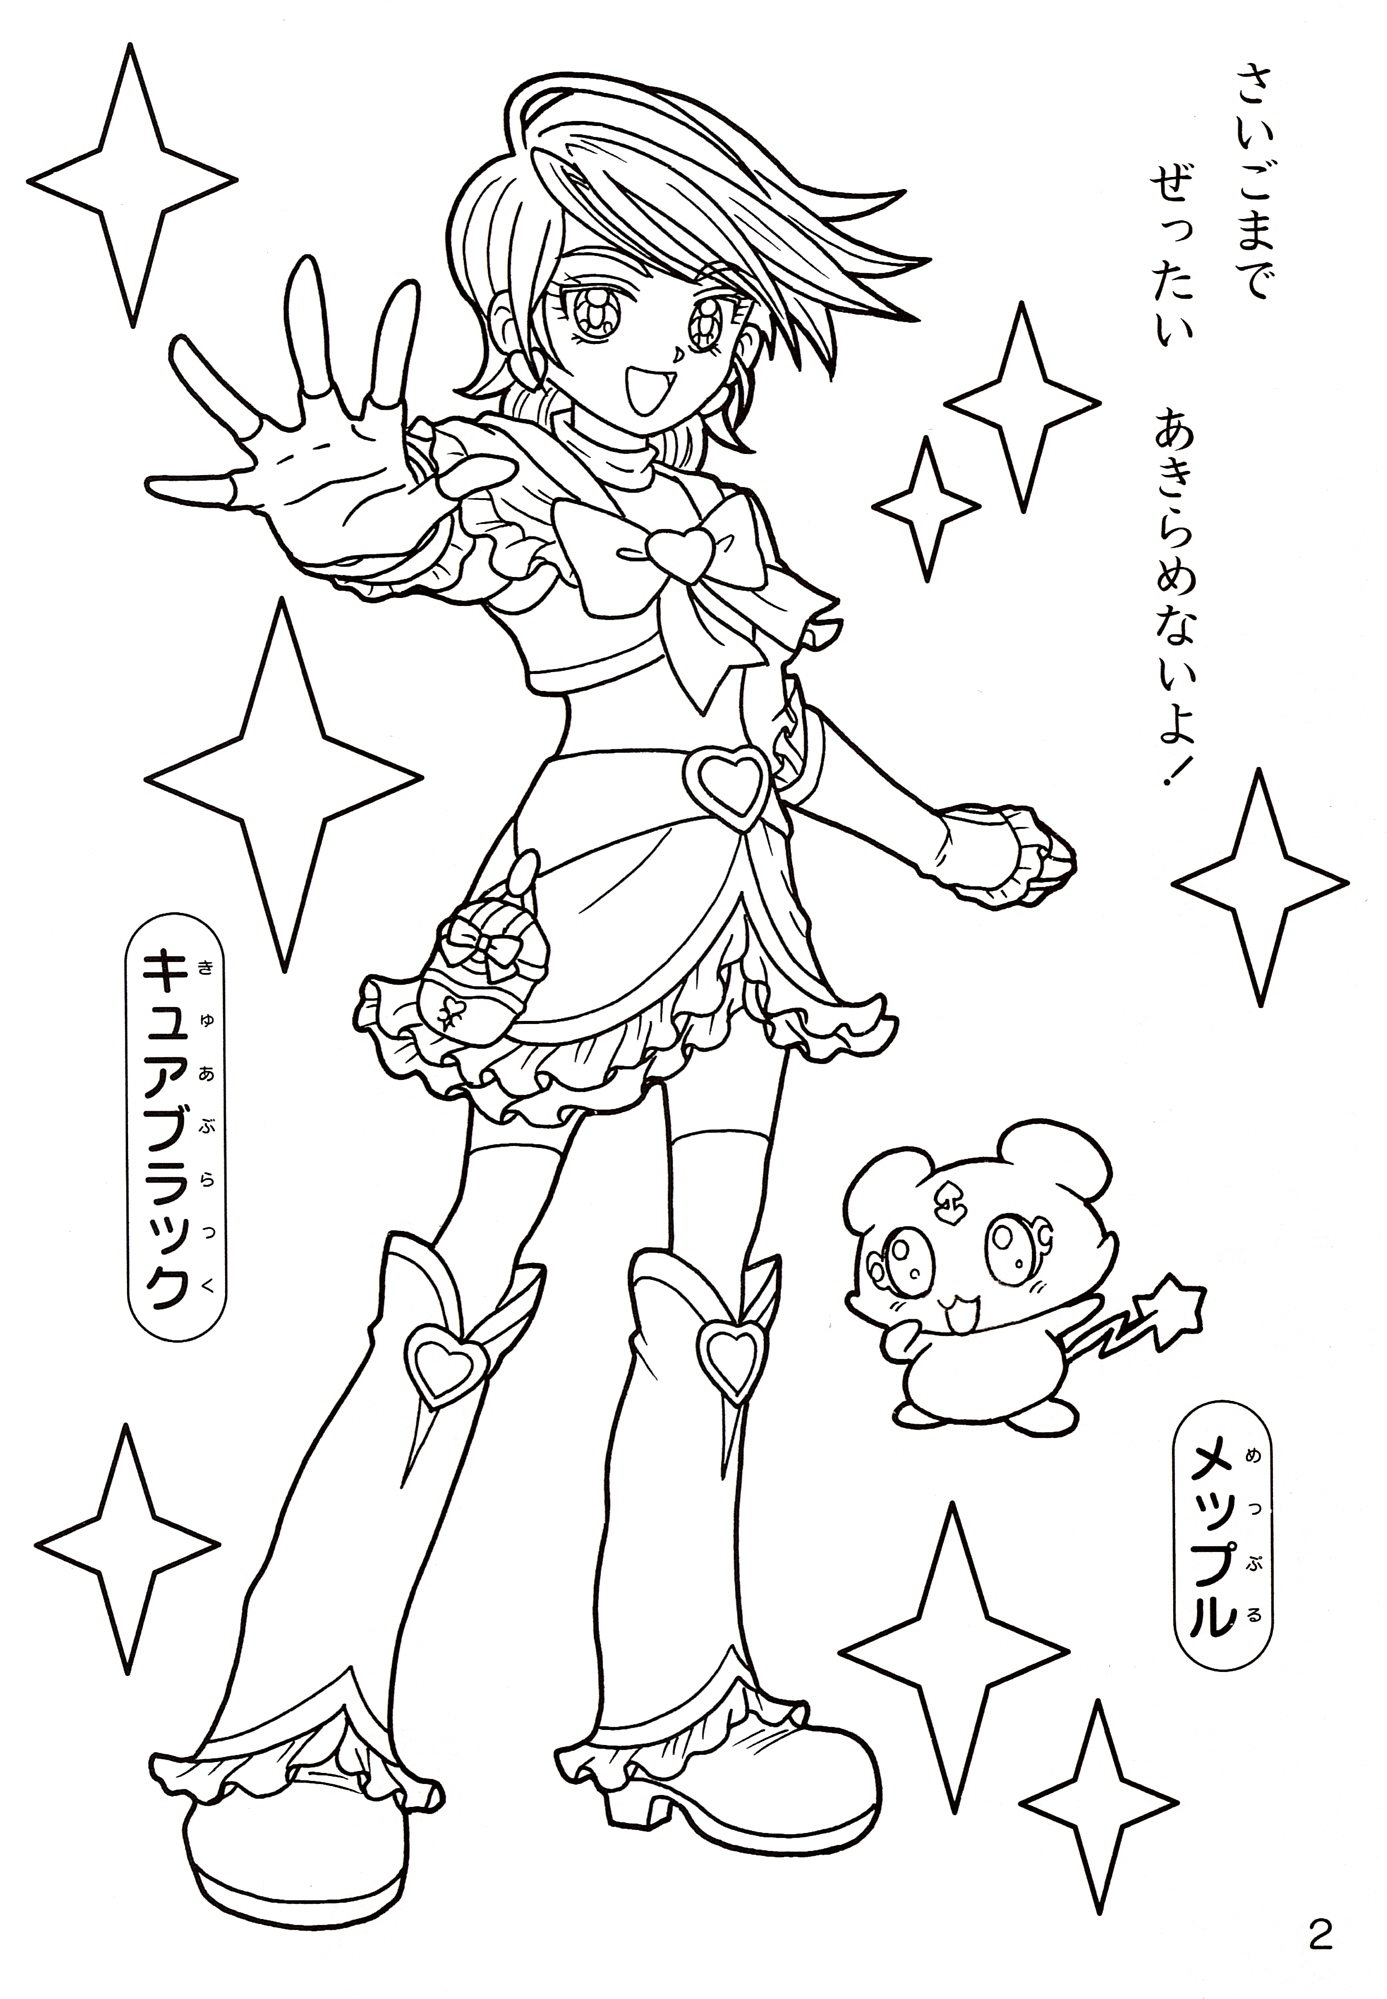 oasidelleanime precure coloring pages - photo #11